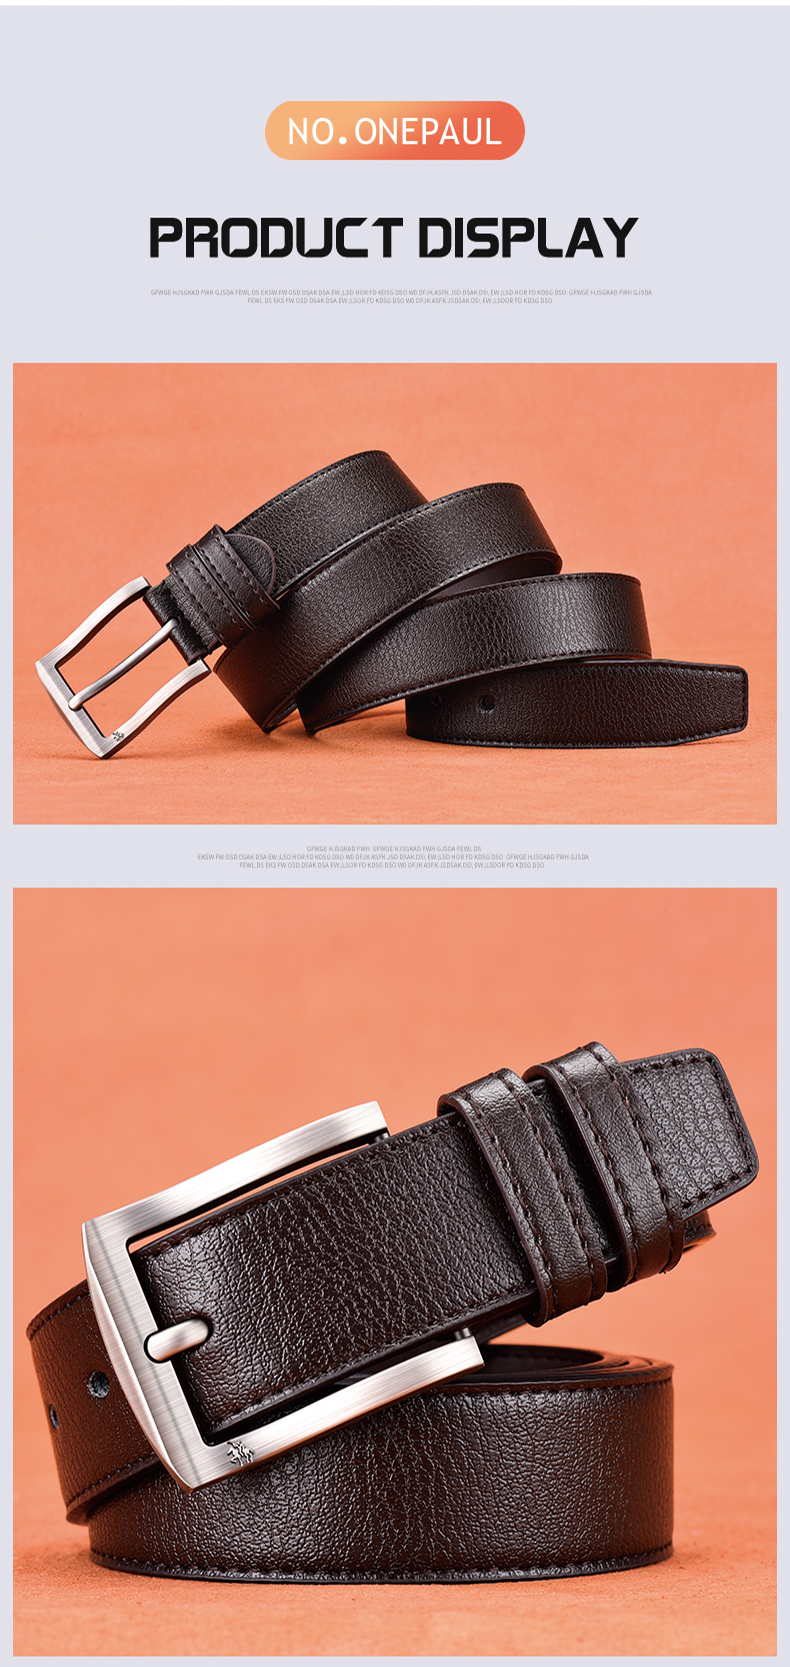 H84fa3b30be5345e096d1ed1582878da9m - NO.ONEPAUL cow genuine leather luxury strap male belts for men new fashion classice vintage pin buckle men belt High Quality